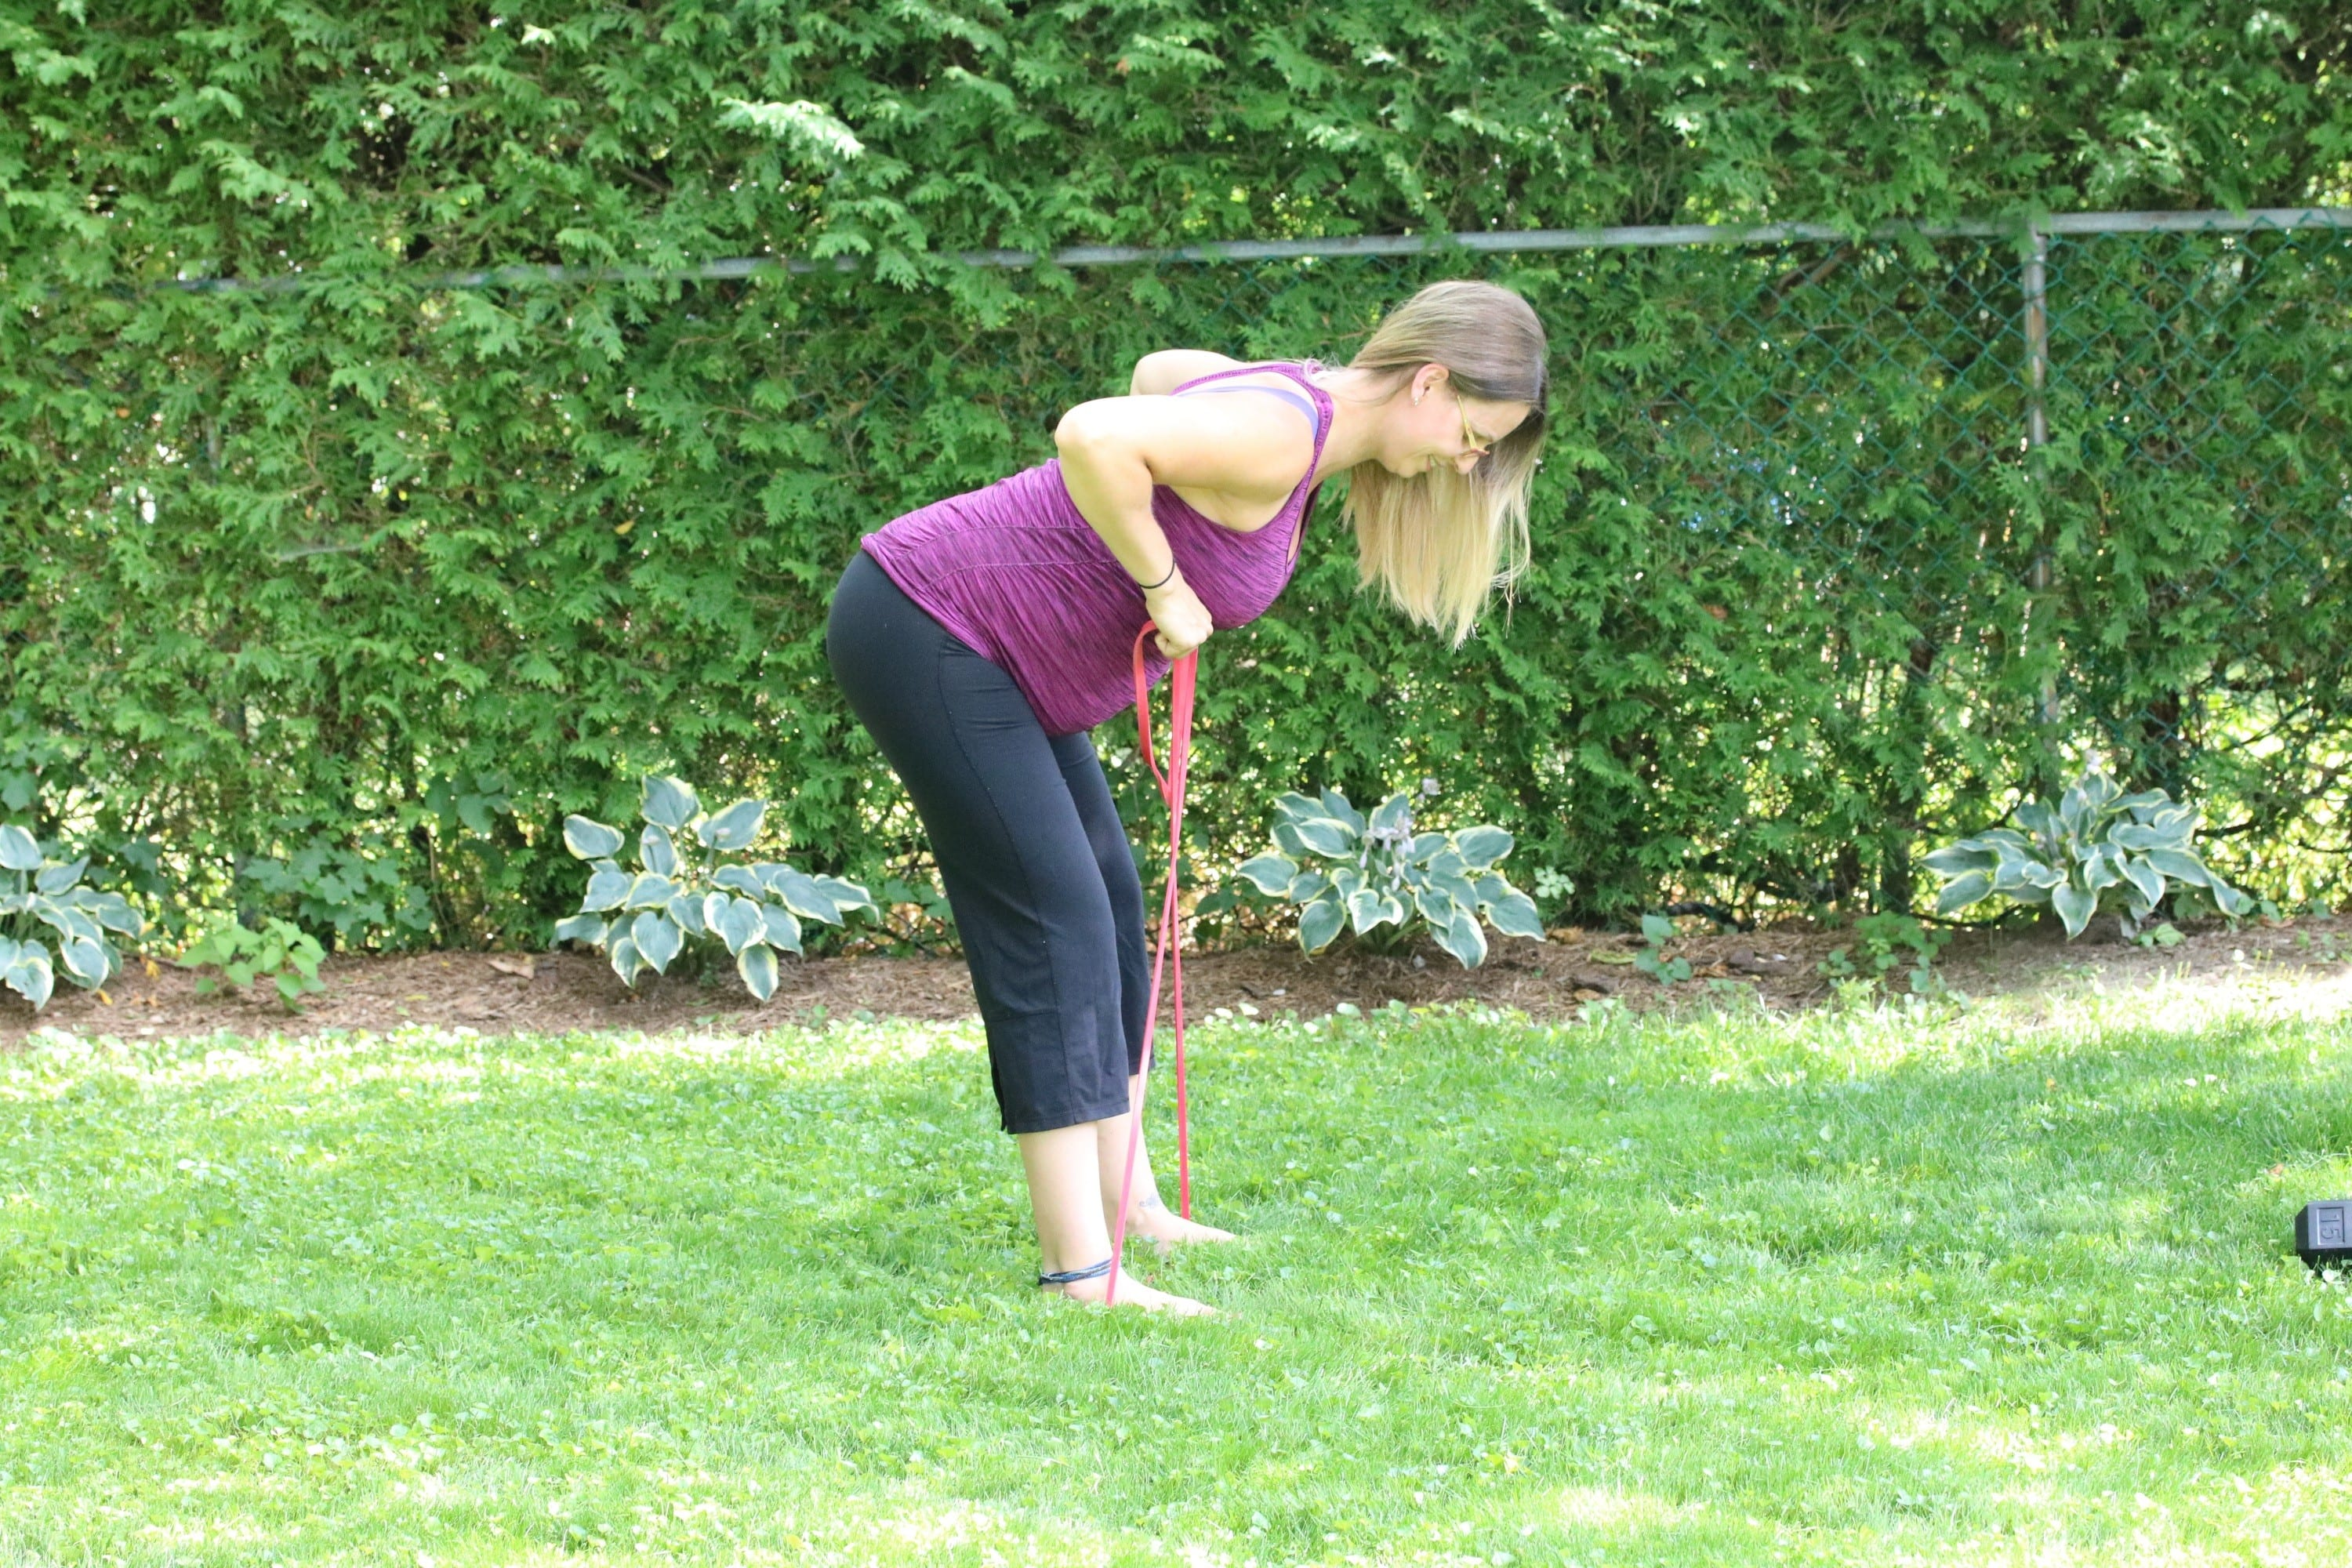 Pregnant lady performing a resistance band exercise outside